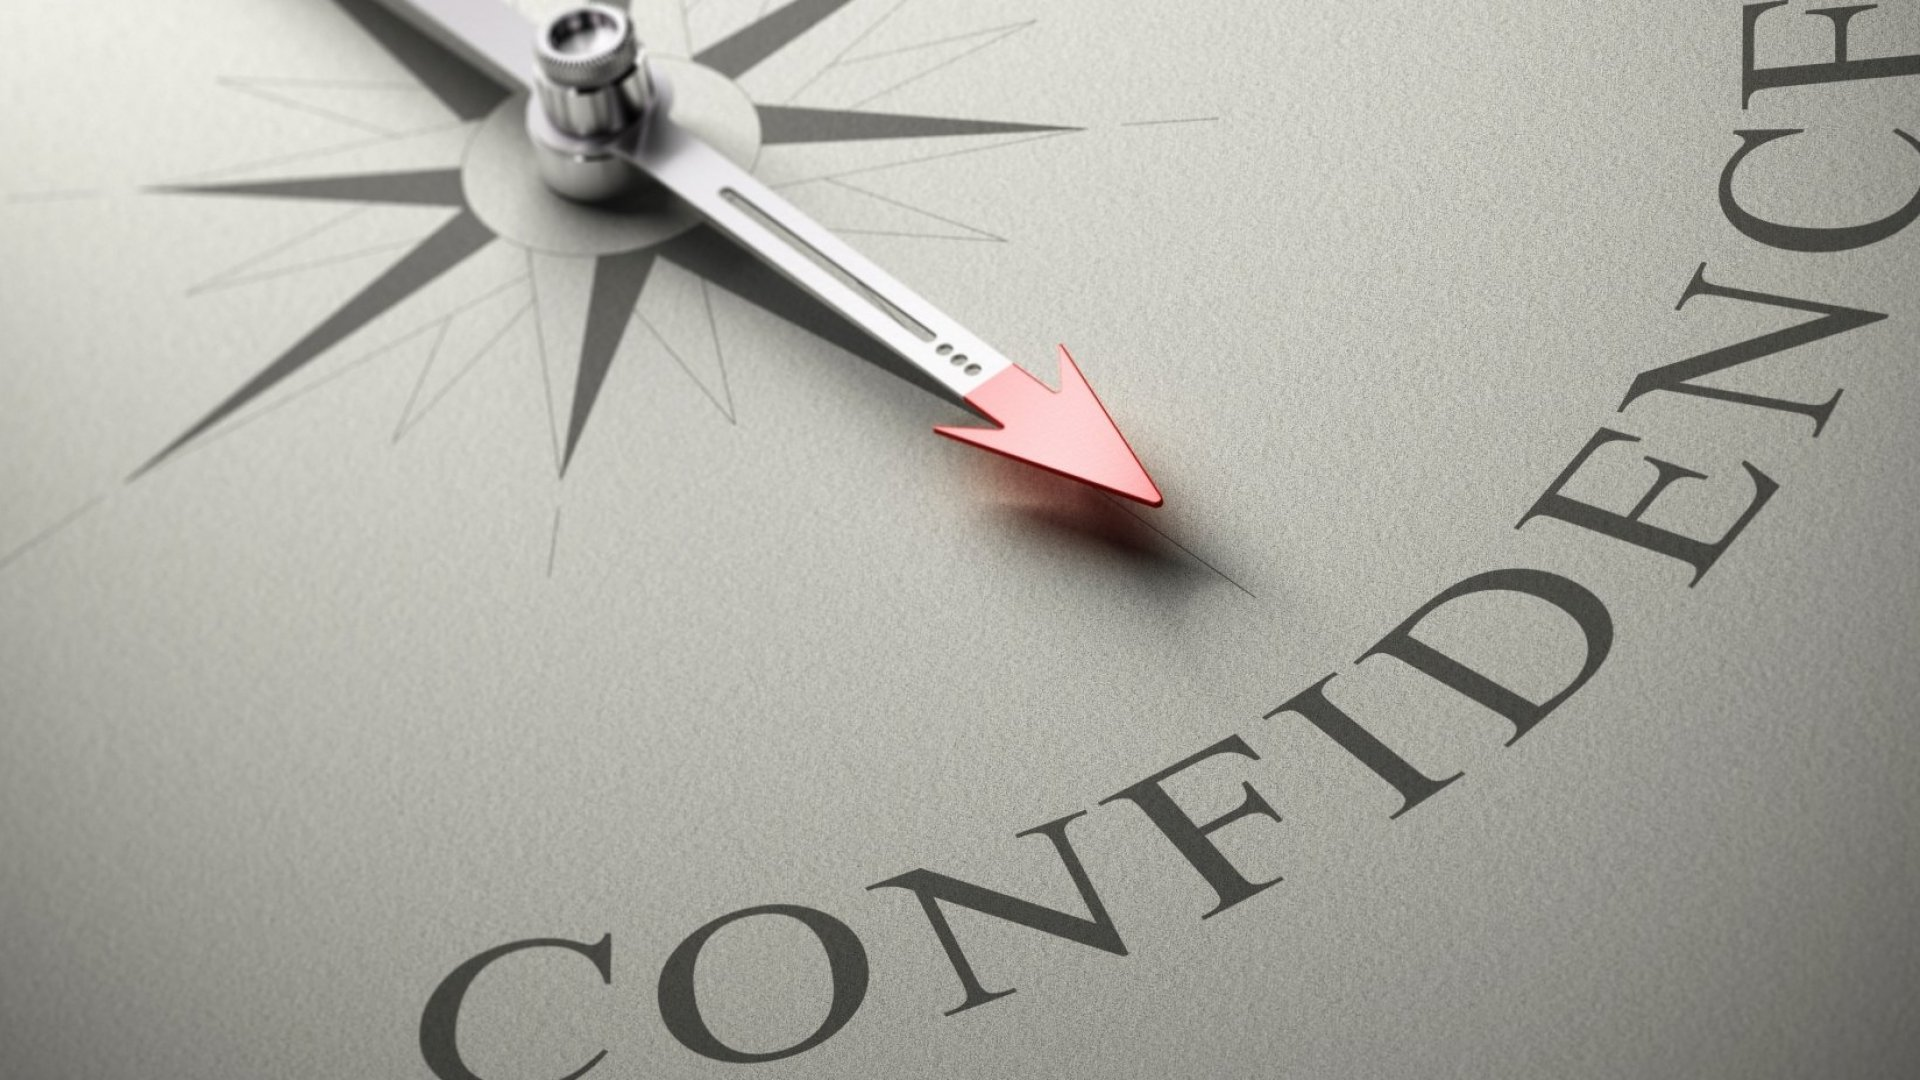 7 Significant Steps to Projecting Confidence